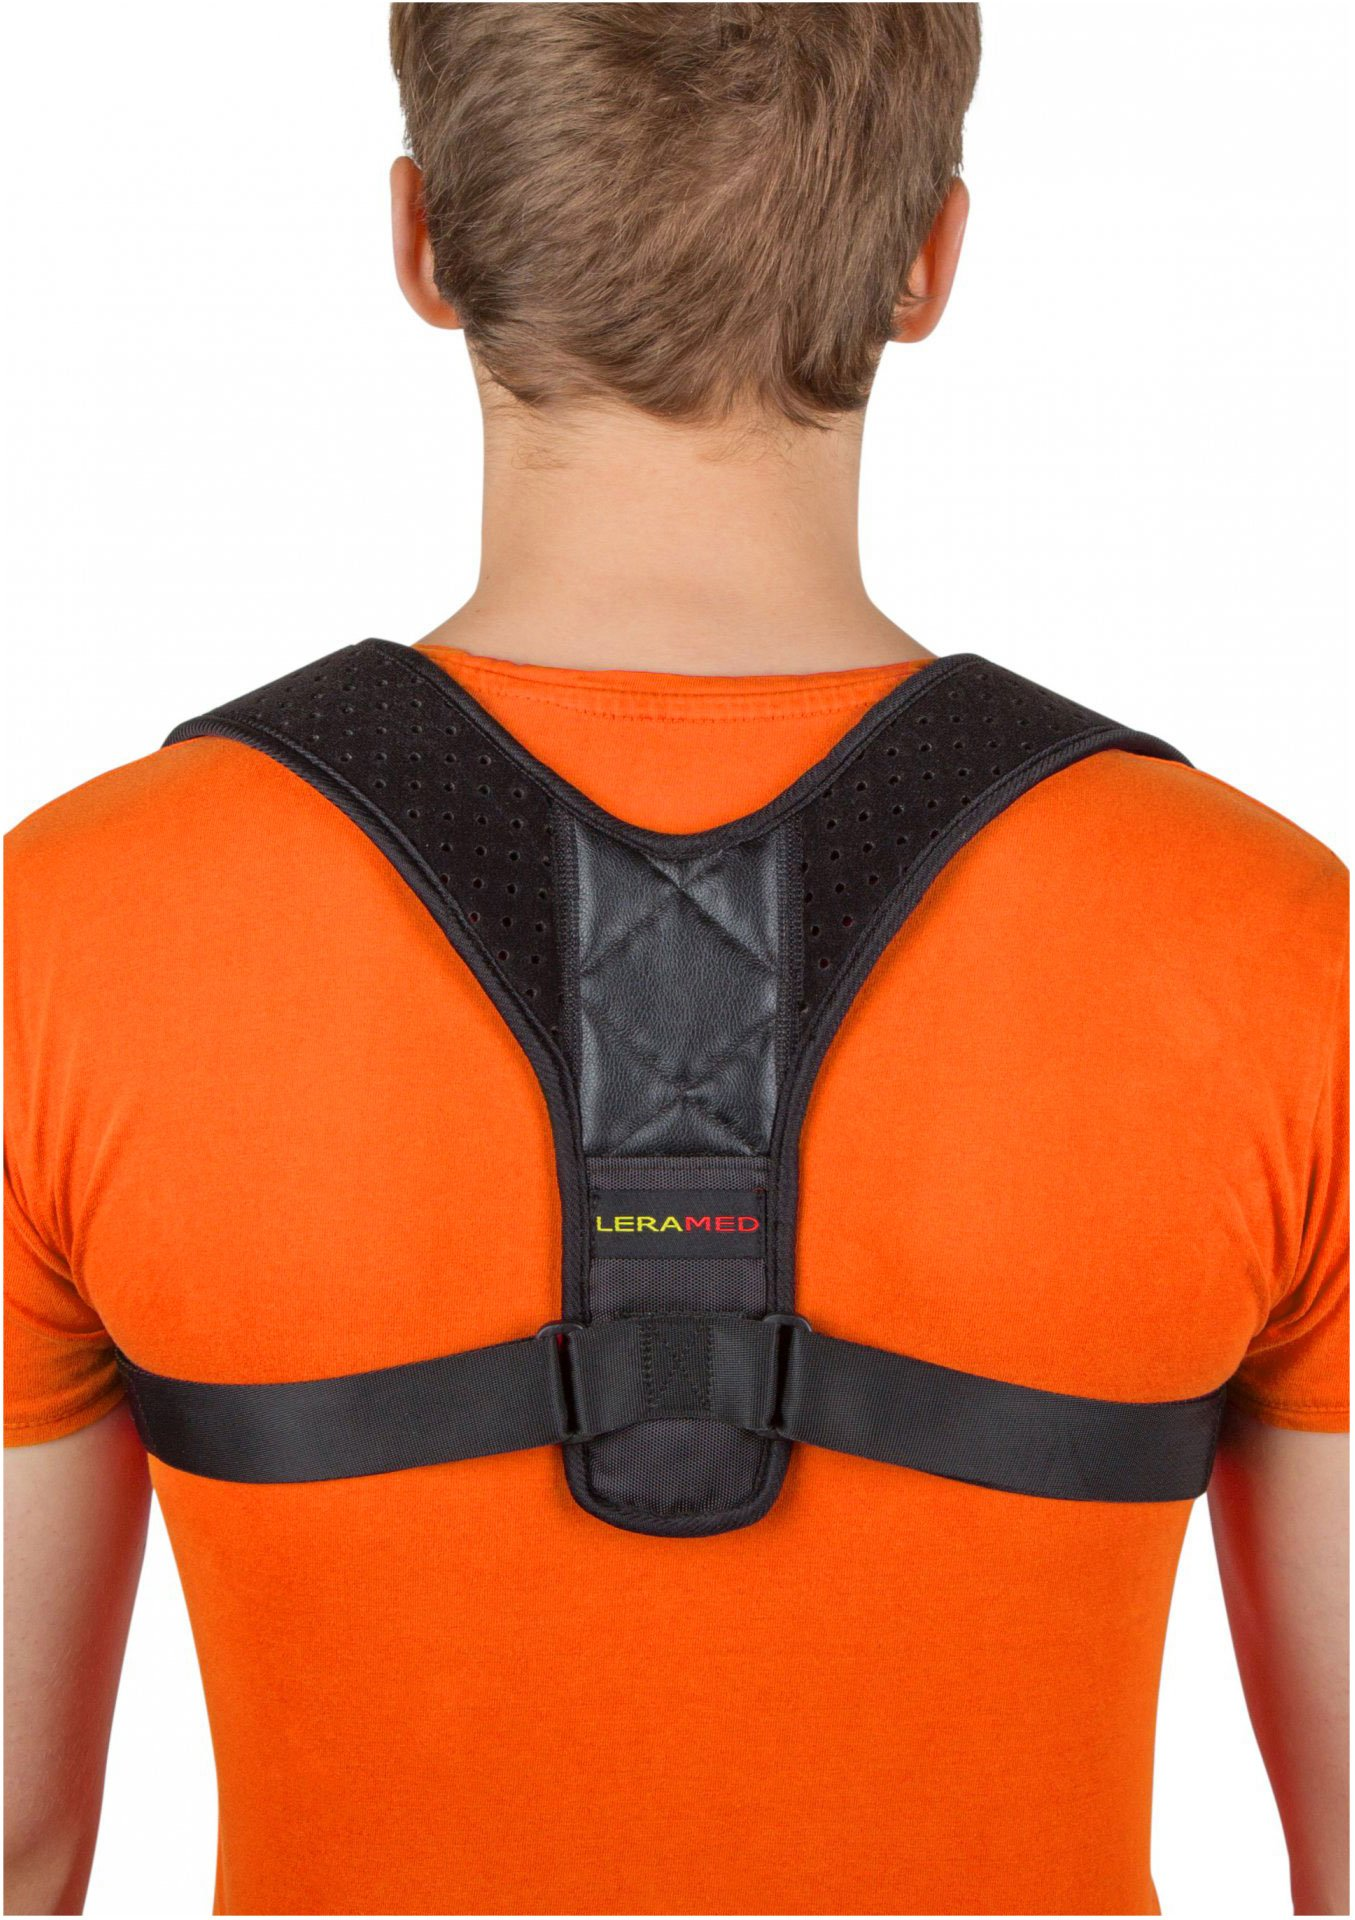 Leramed Posture Corrector for Women and Men - Back Brace, Effective Comfortable Adjustable Posture Correct Brace, Support, Kyphosis Brace, Muscle Pain Reliever, Back Pain Reliever